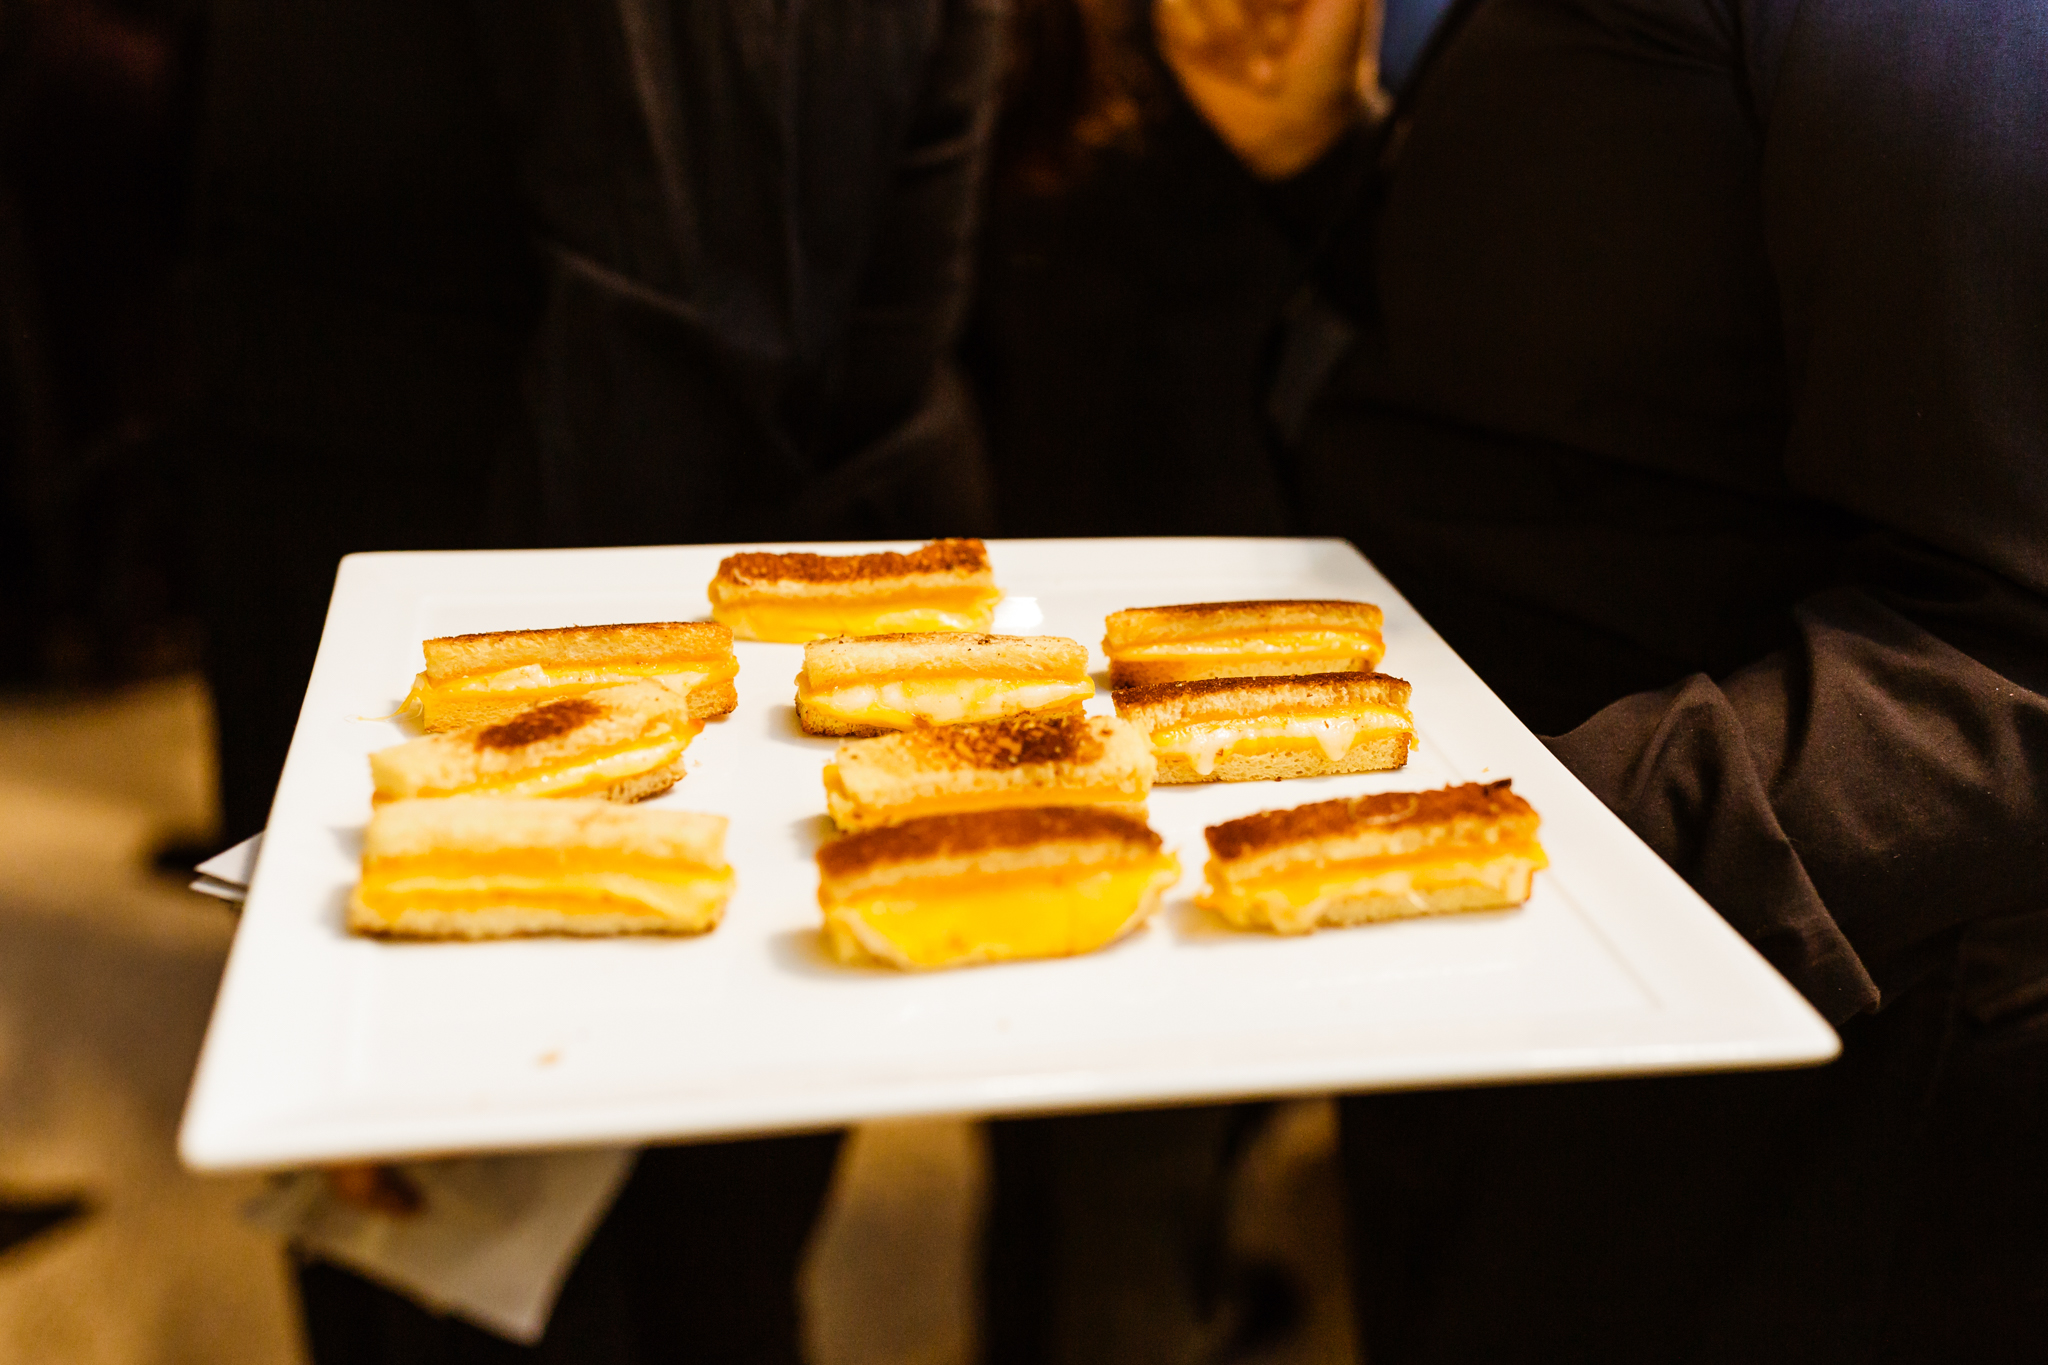 Grilled cheese hors d'oeuvres